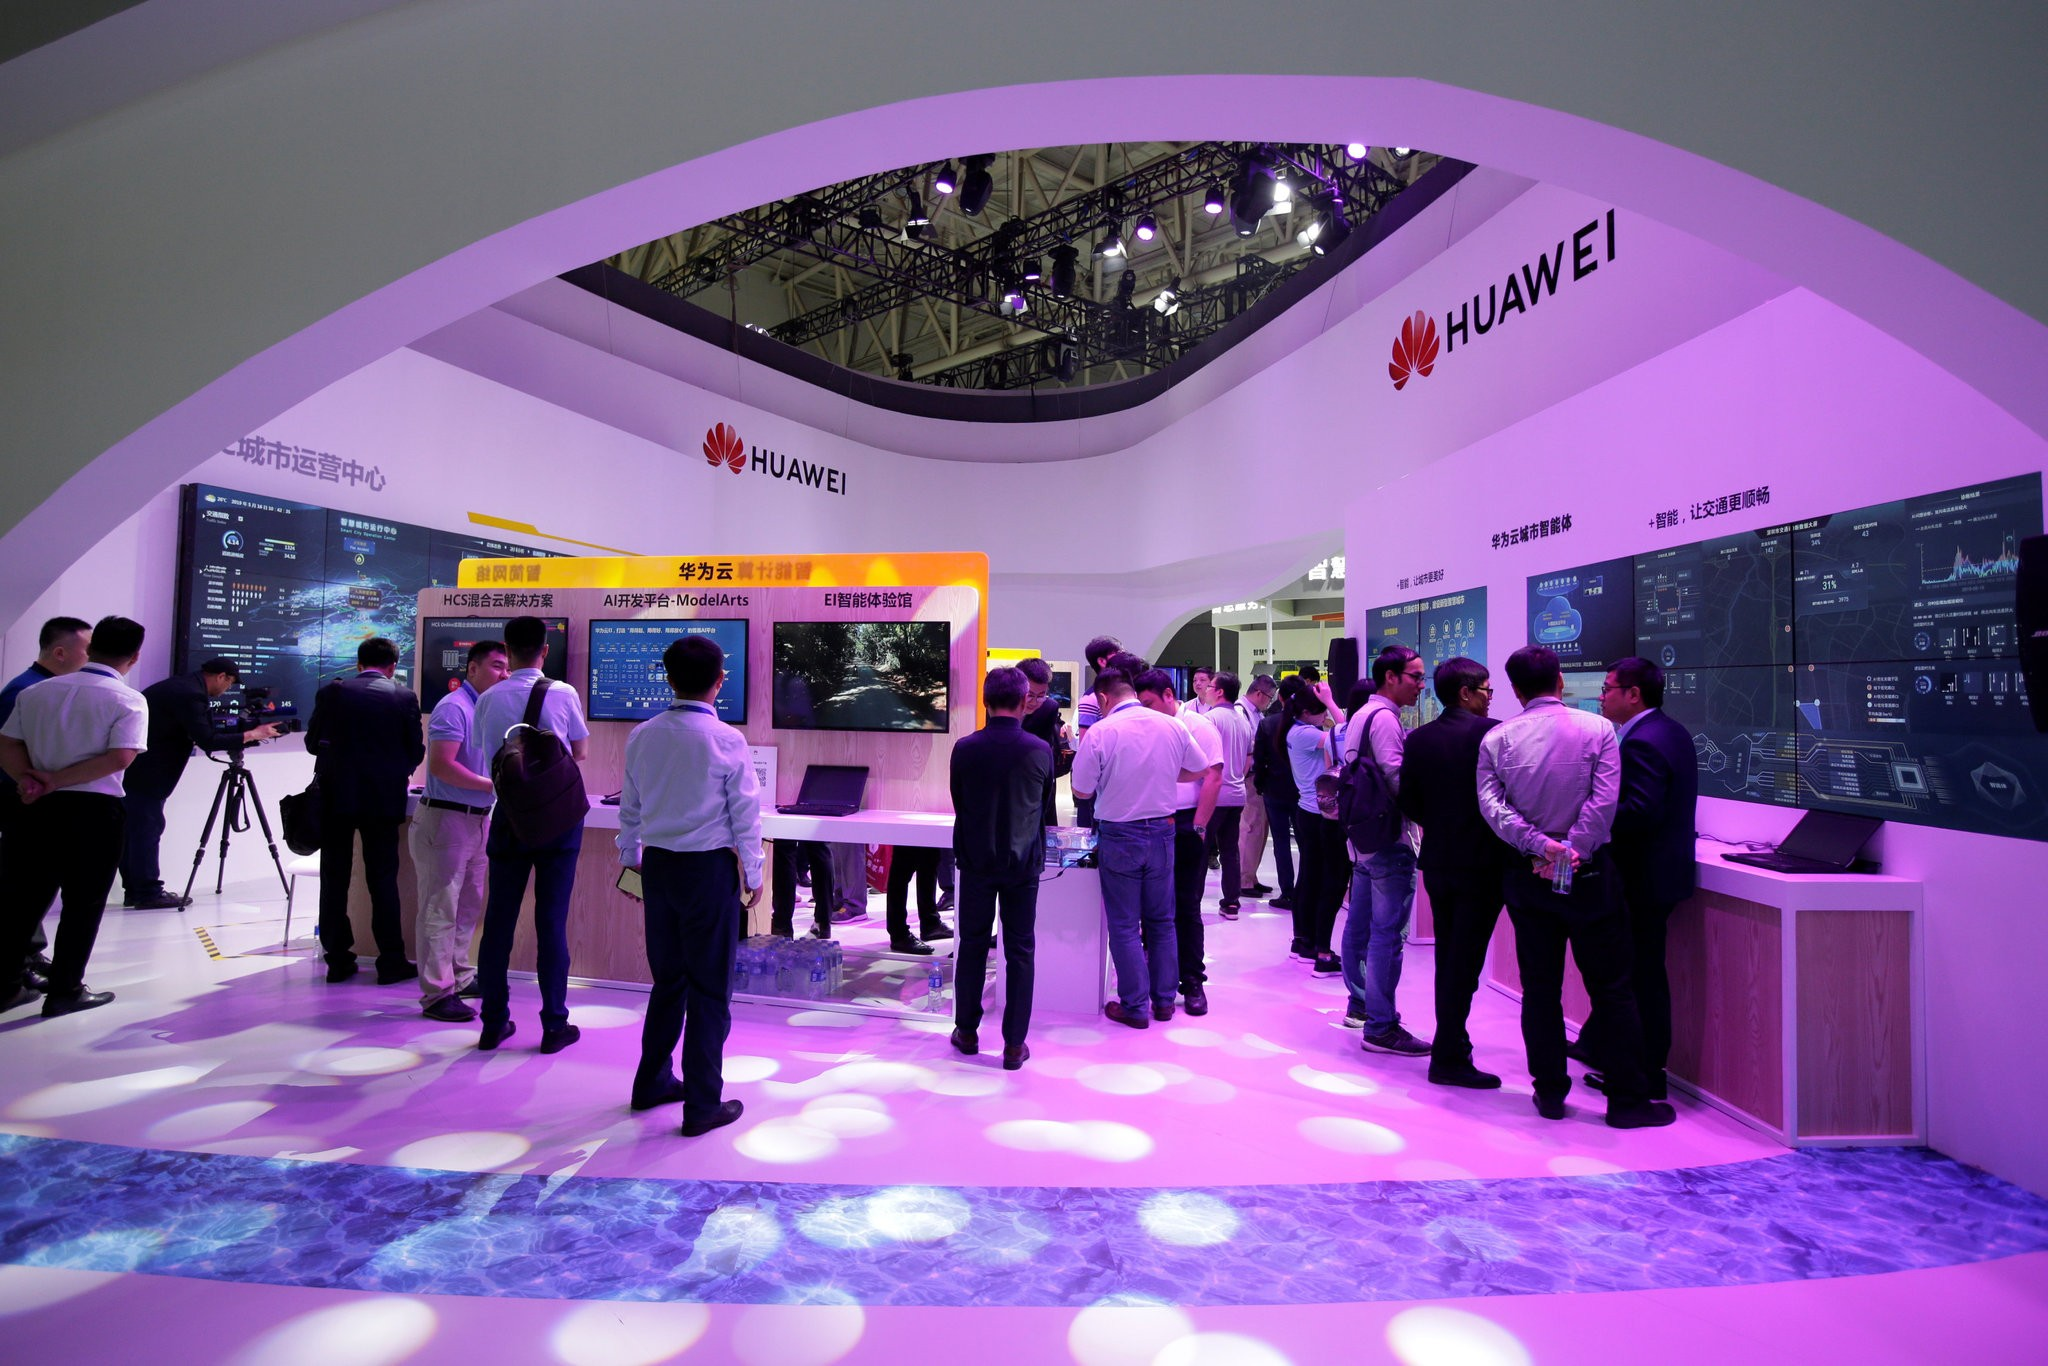 The Trump administration has moved to restrict Huawei's access to American technology. Credit Jason Lee/Reuters